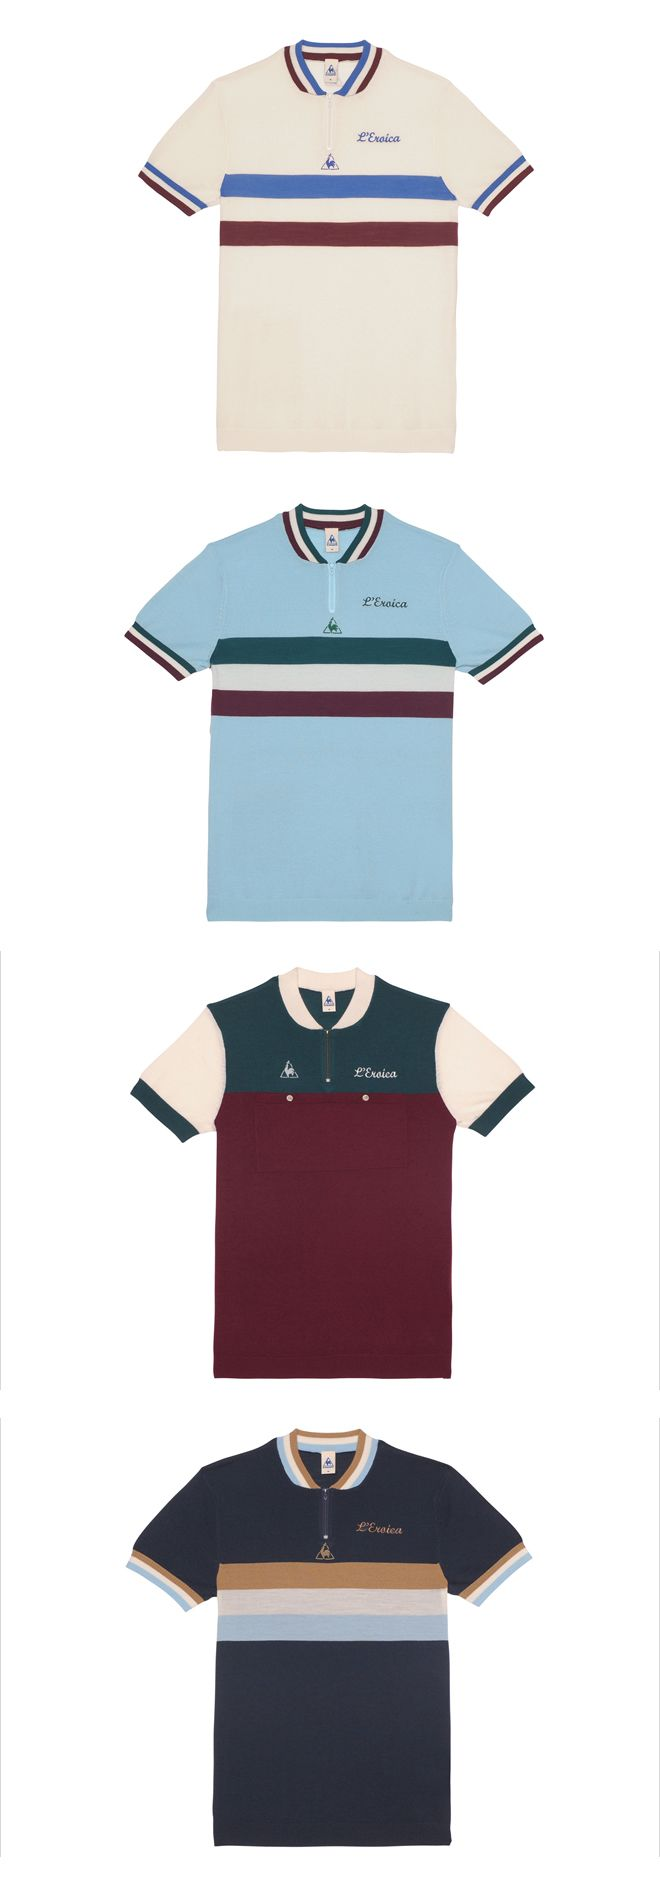 L'EROICA CYCLING RANGE from le coq sportif